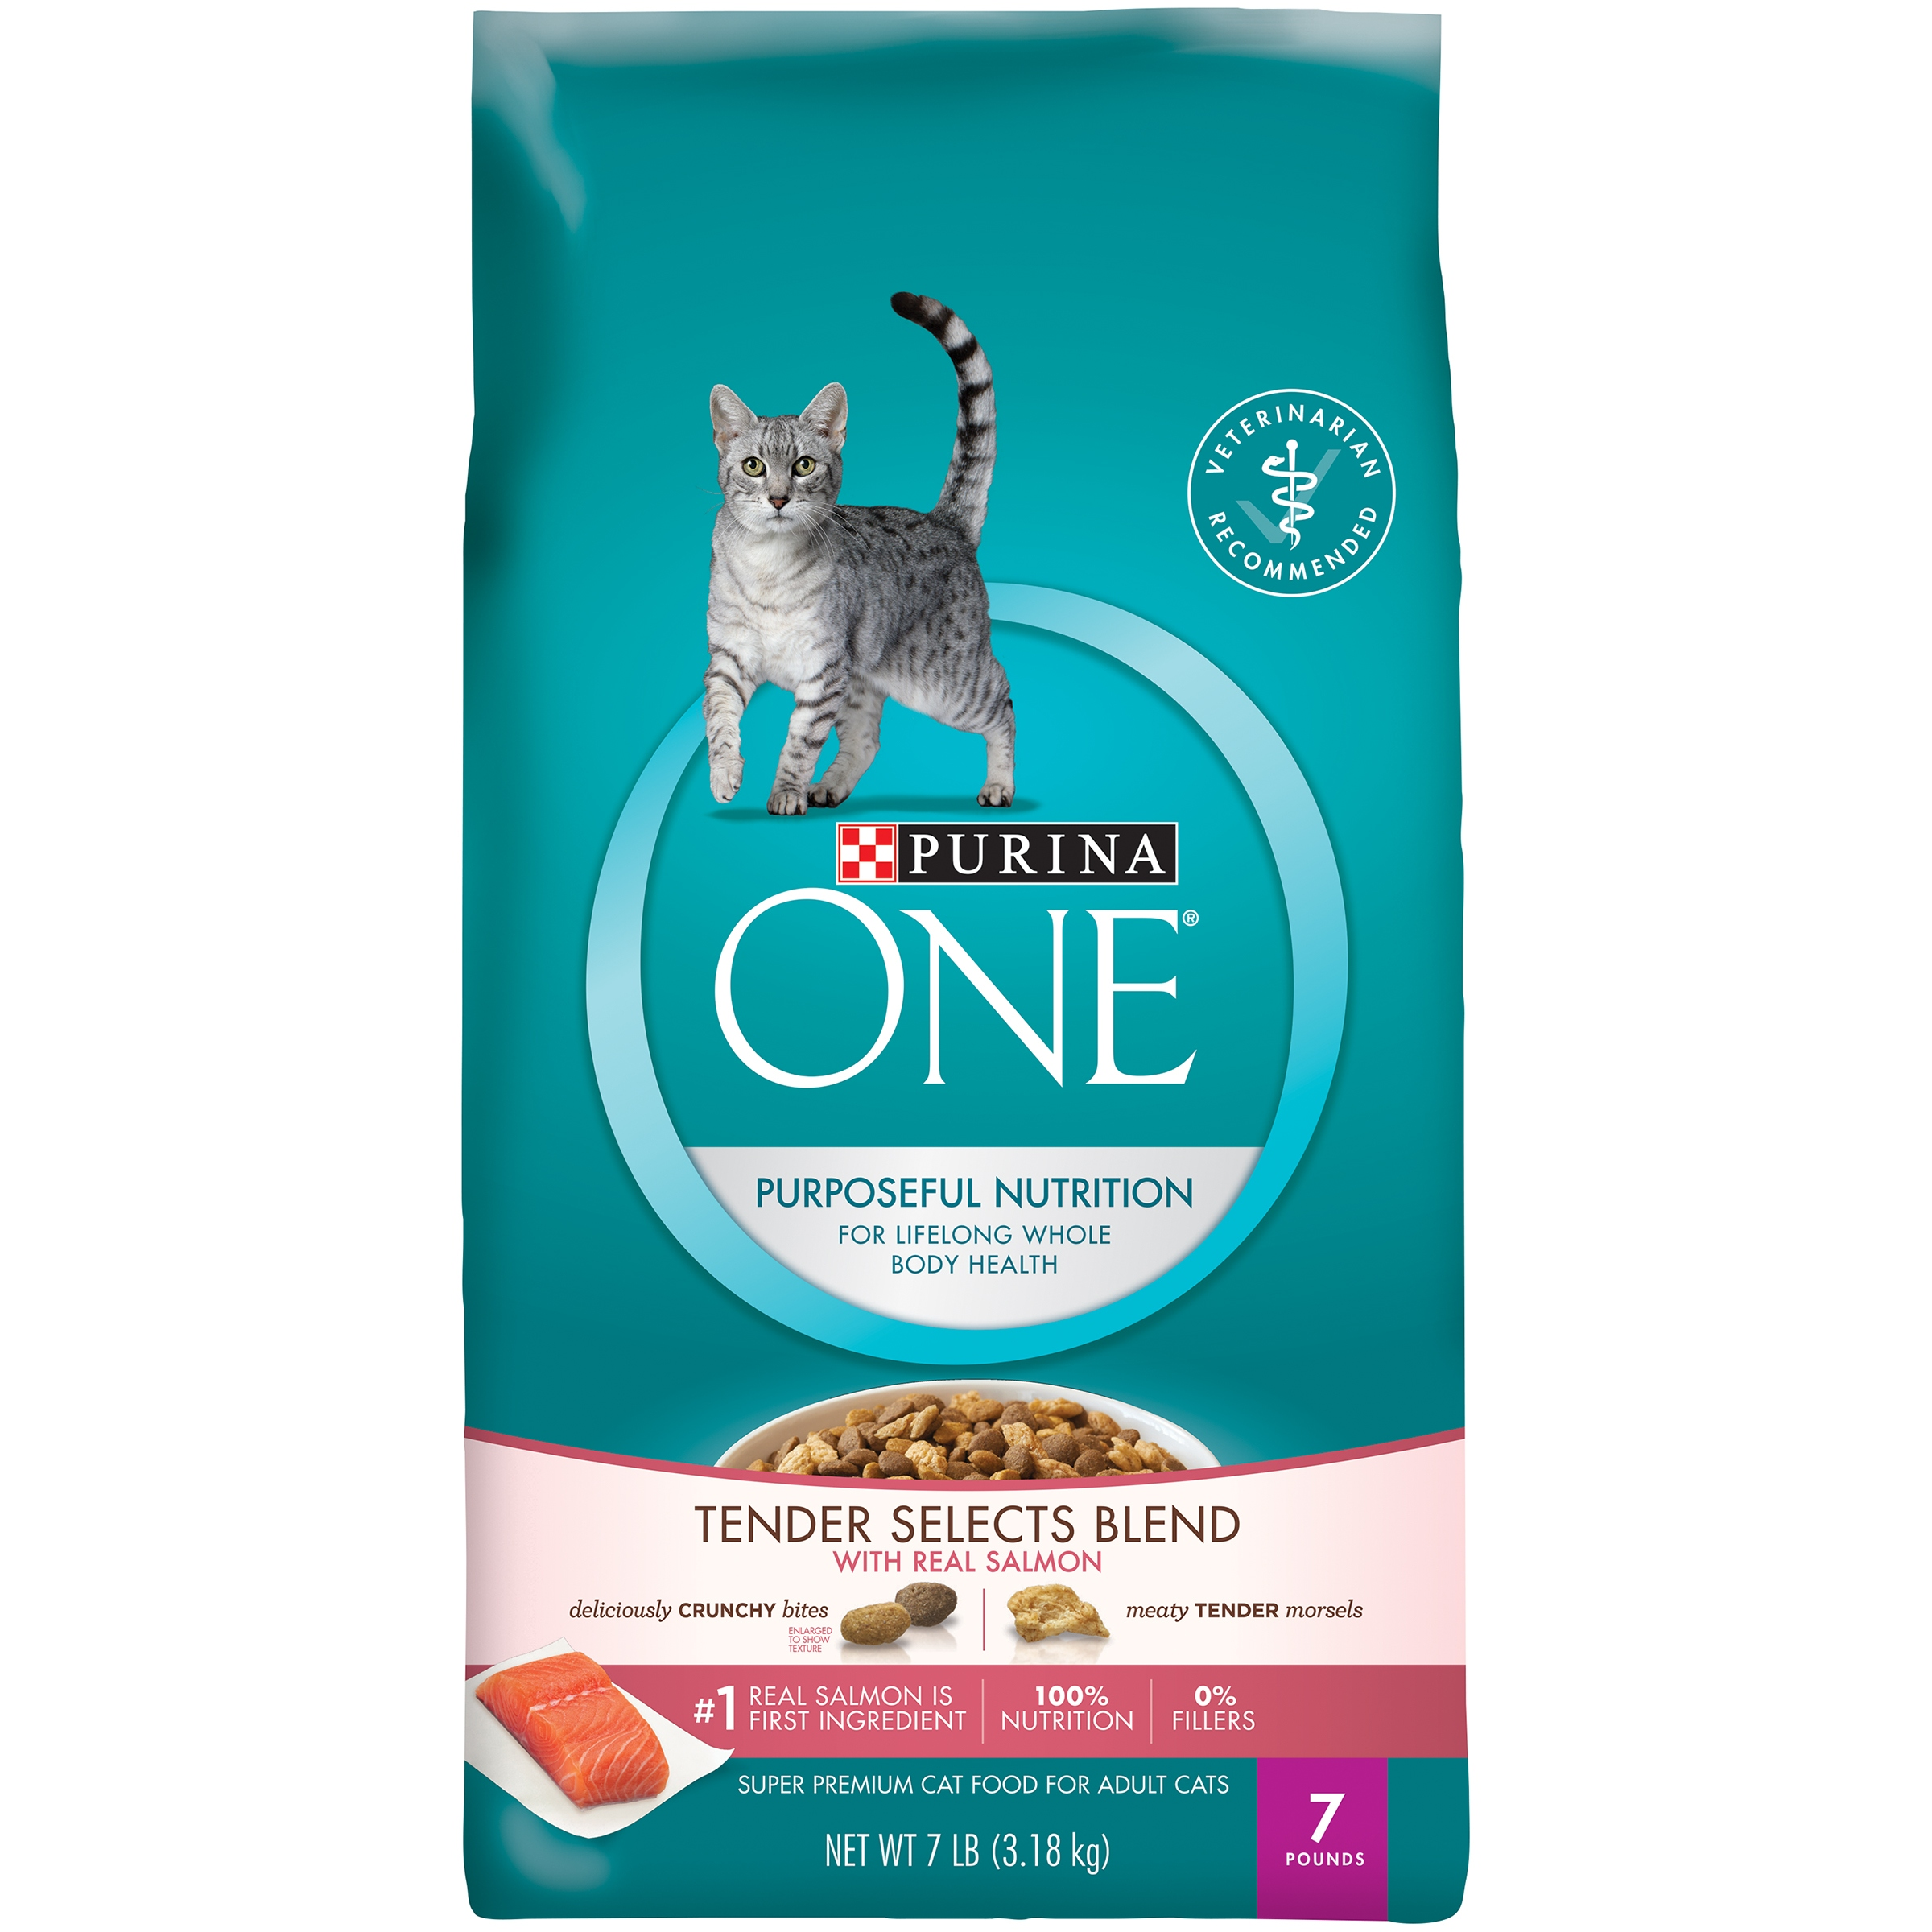 Purina ONE Tender Selects Blend with Real Salmon Cat Food 7 lb. Bag